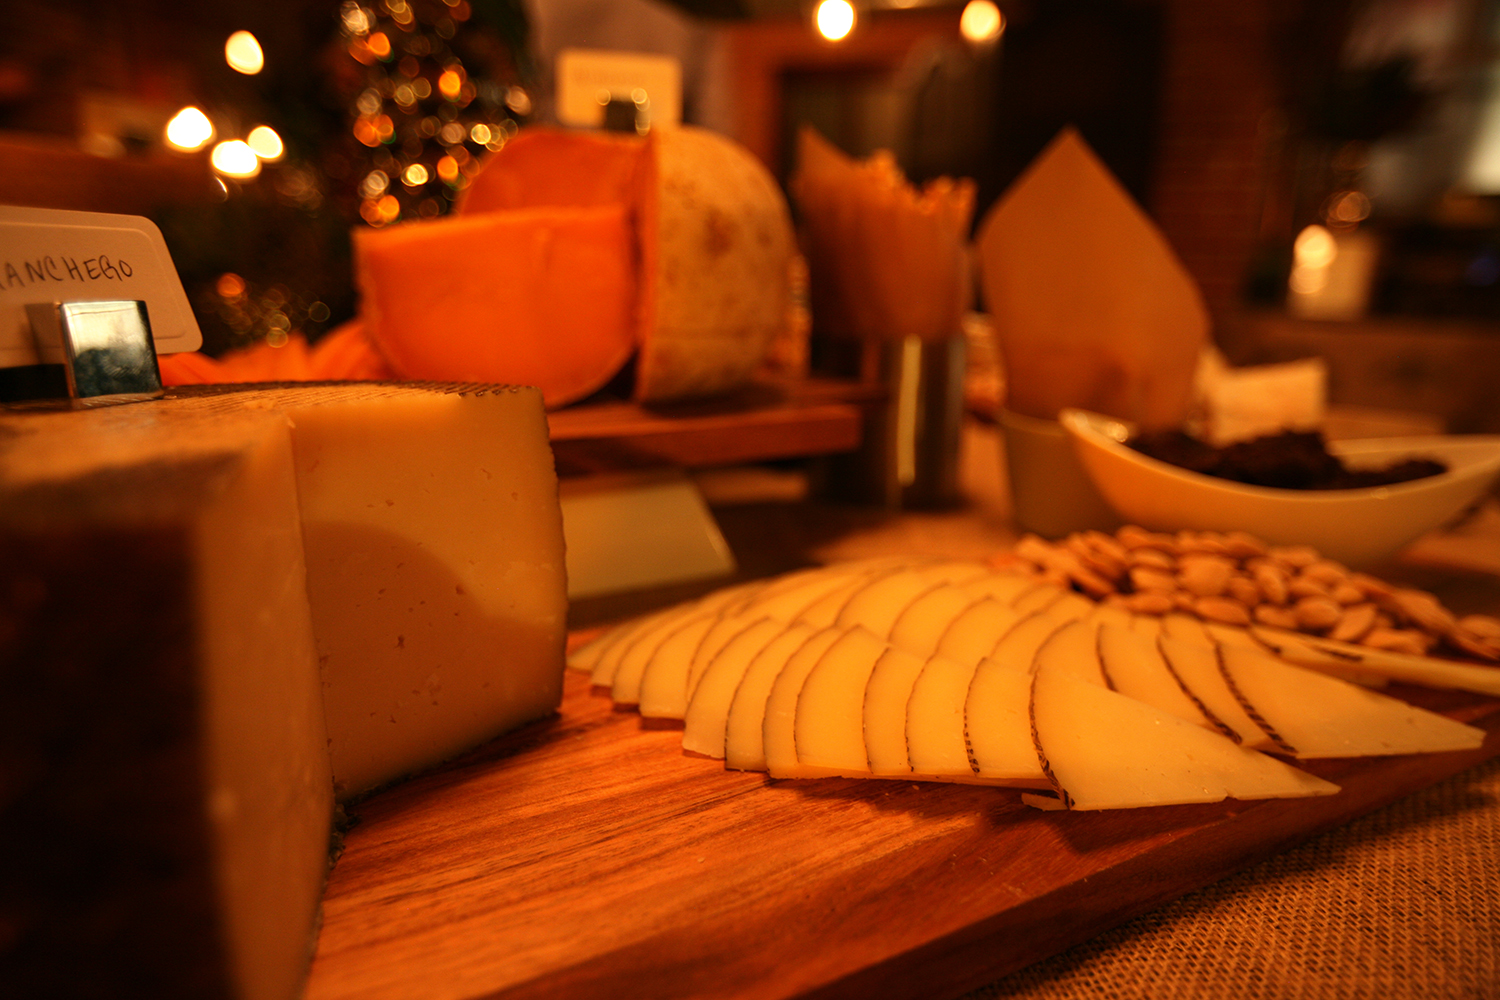 Grand cheese display